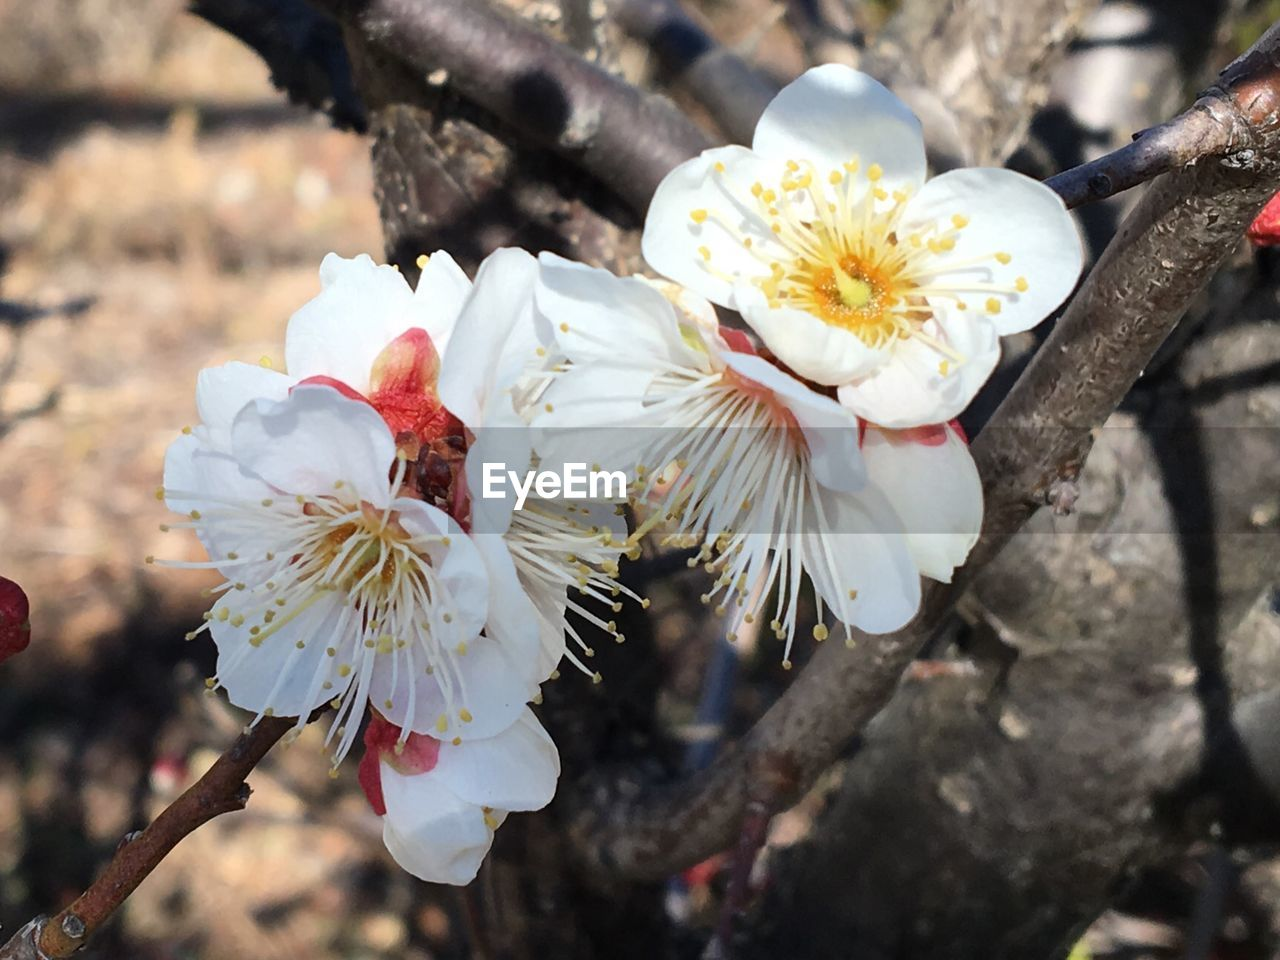 flower, petal, fragility, white color, beauty in nature, nature, flower head, growth, blossom, freshness, botany, close-up, springtime, no people, tree, blooming, stamen, pollen, day, branch, outdoors, plum blossom